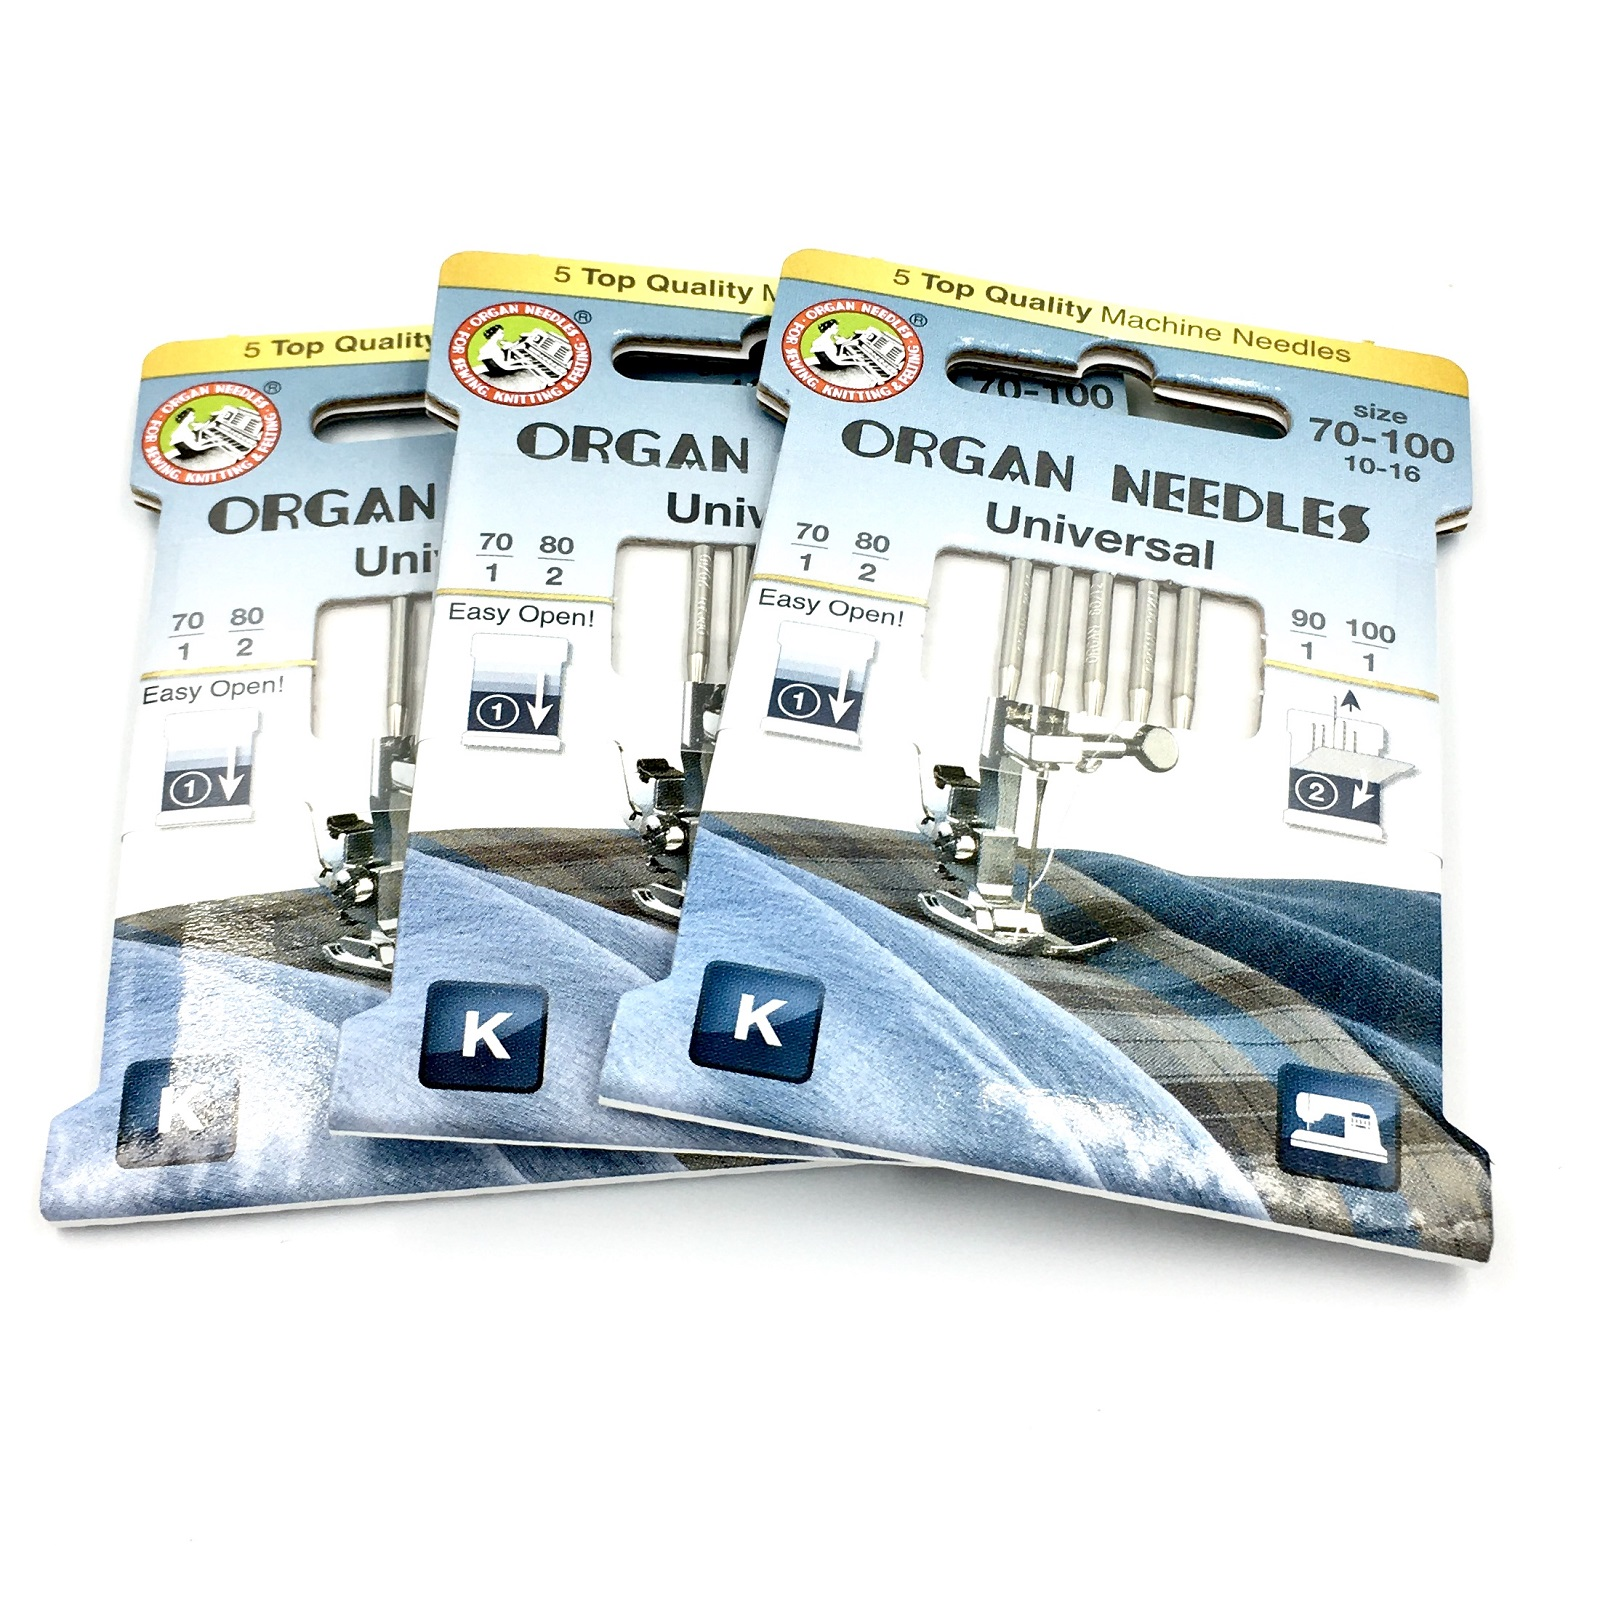 Organ ECO Domestic Needles 130/705H (3 x 5 pack - assorted)